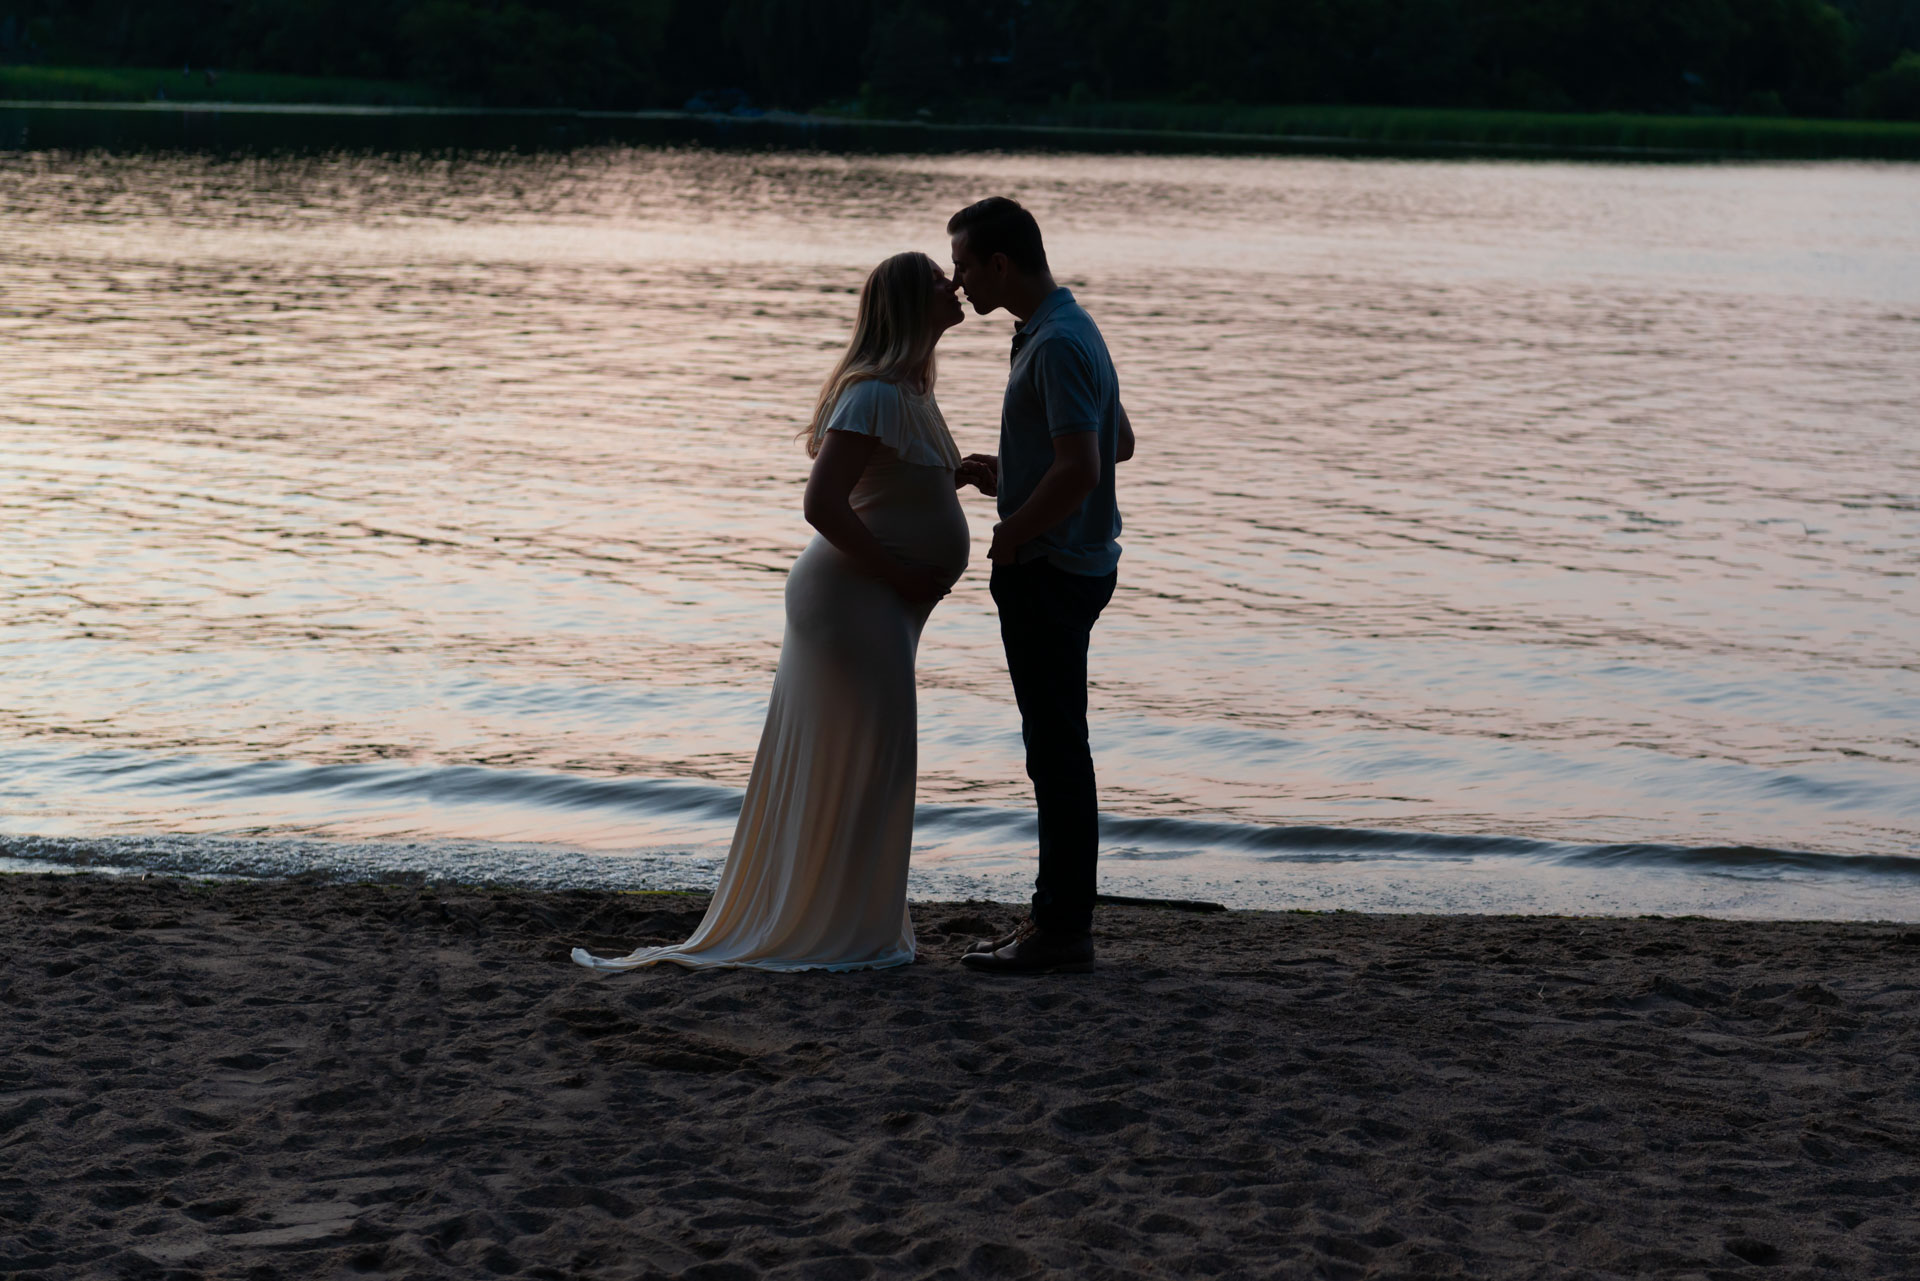 A quiet moment together during their sunset maternity photo shoot in Plymouth. Gown provided by Addie Lane Studios.